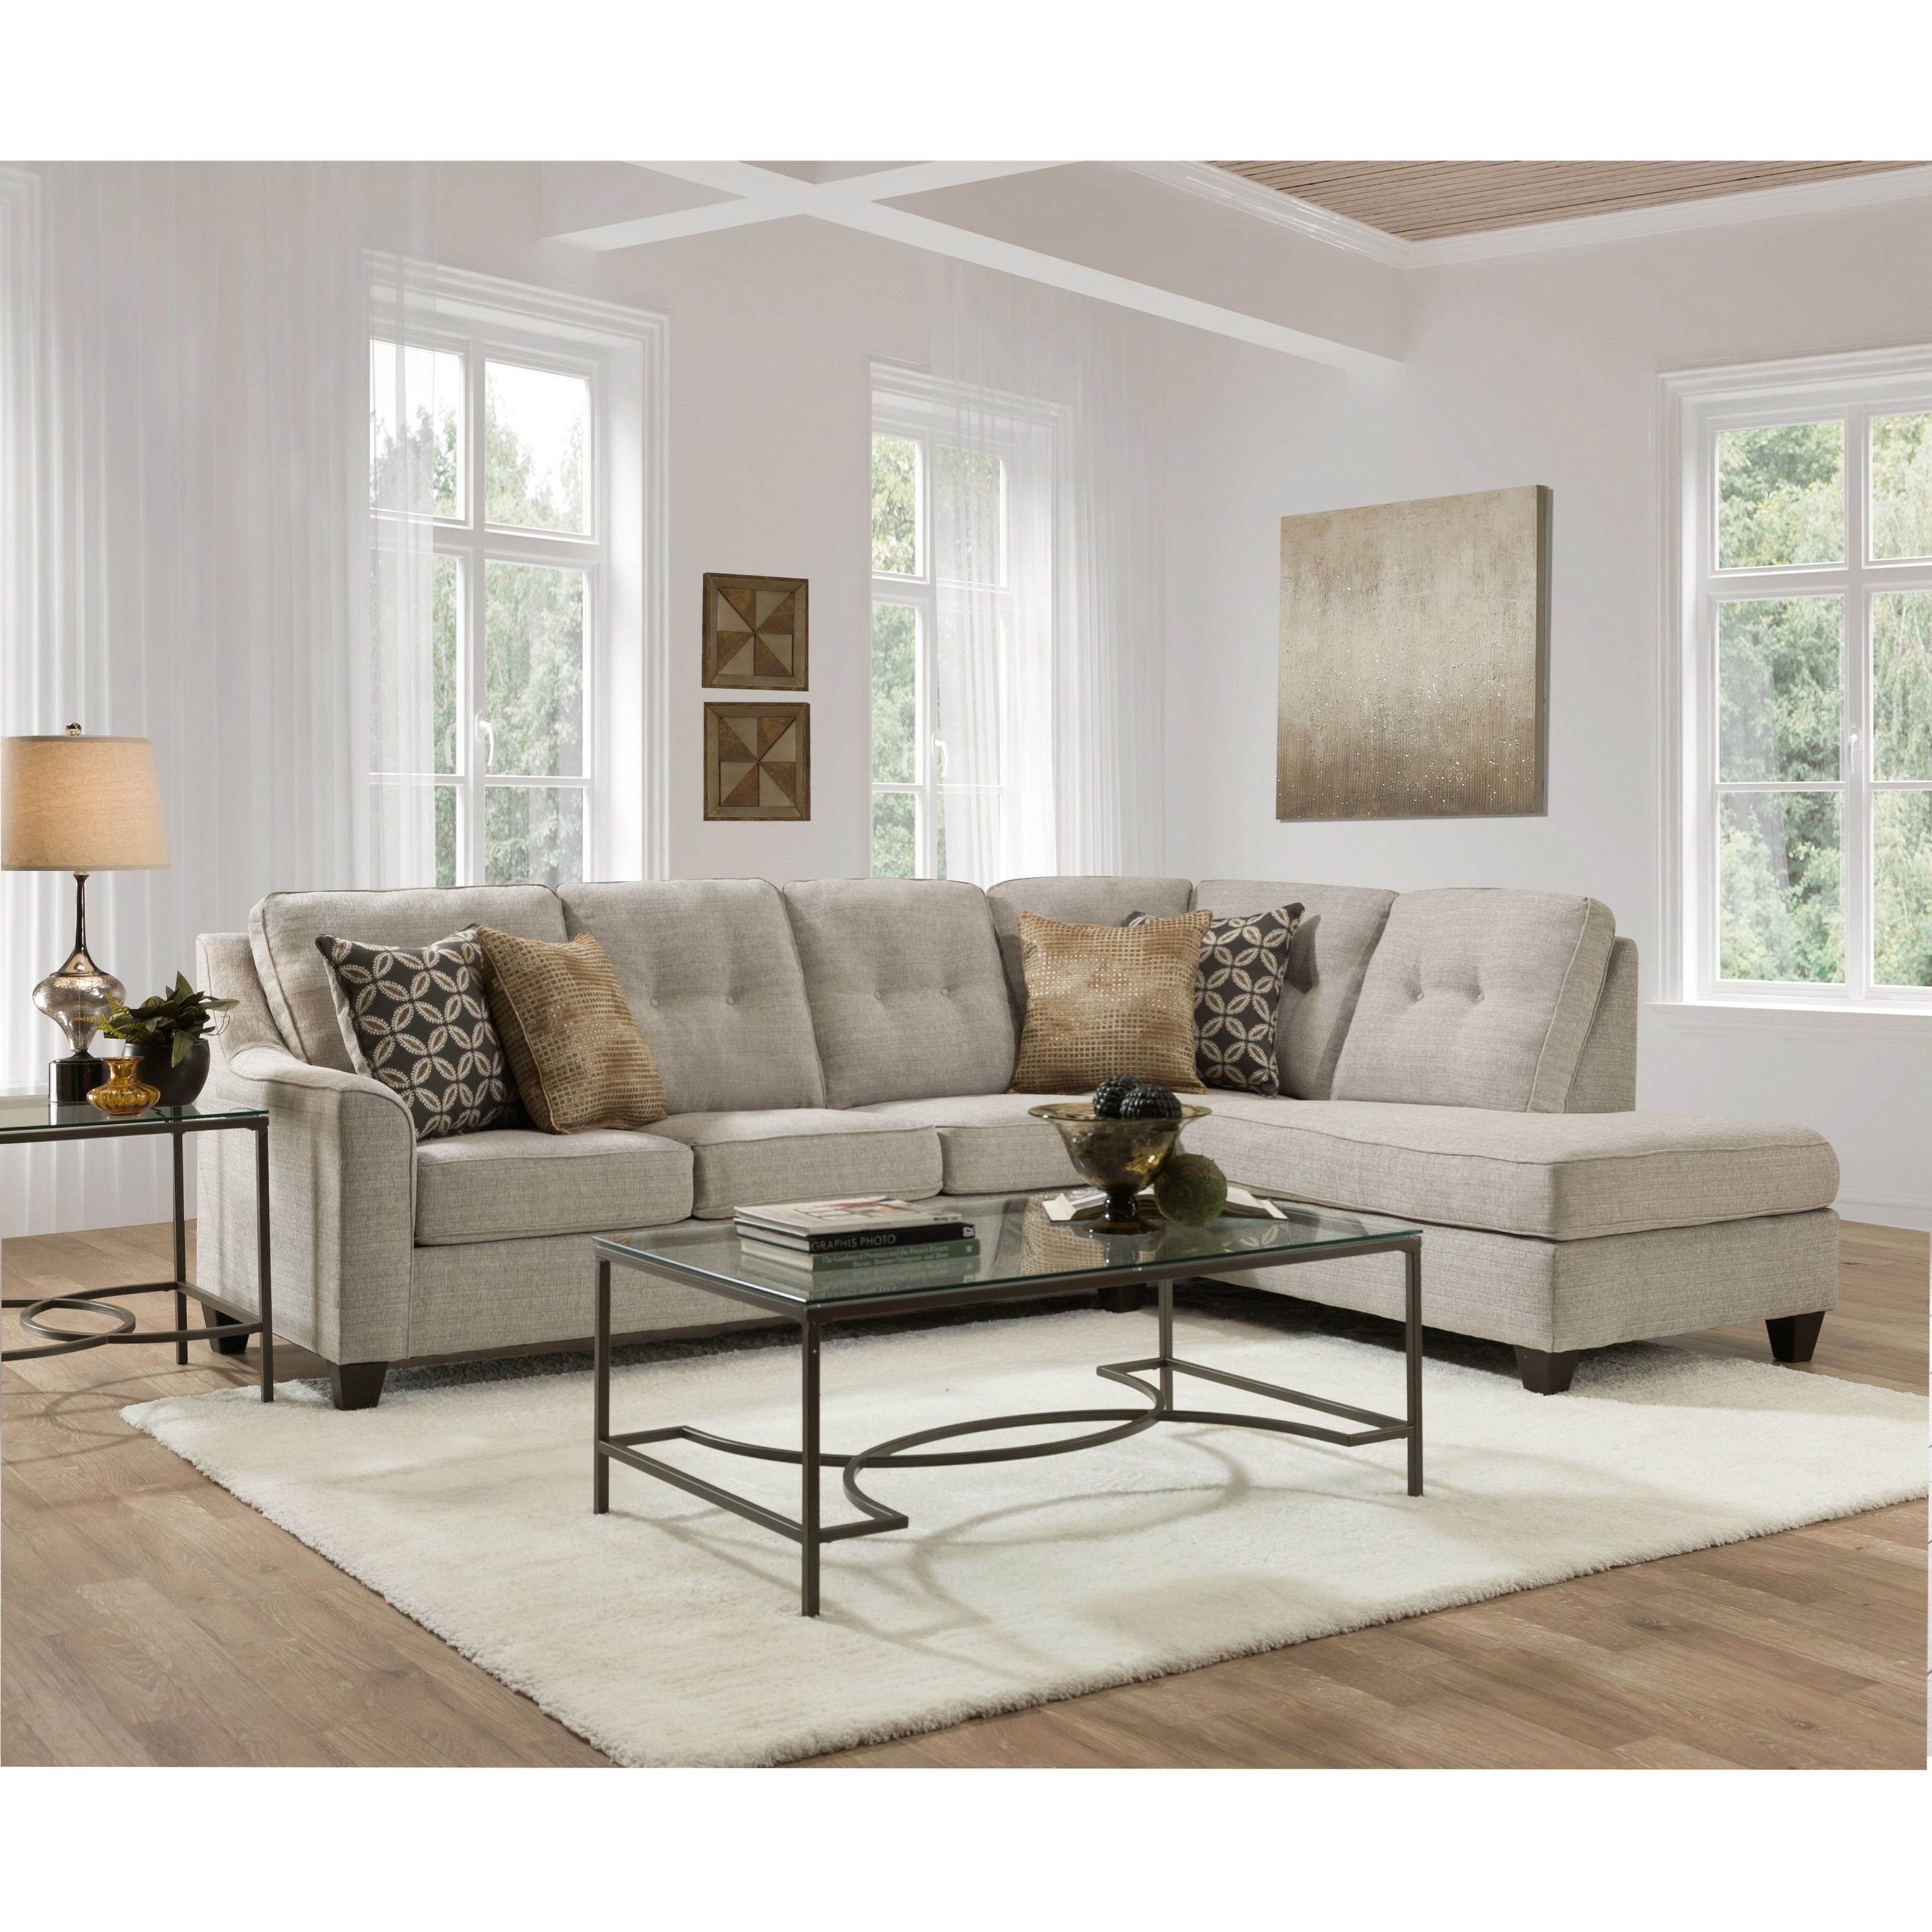 2019 2-Piece Sectional by Lane at Powell's Furniture and Mattress